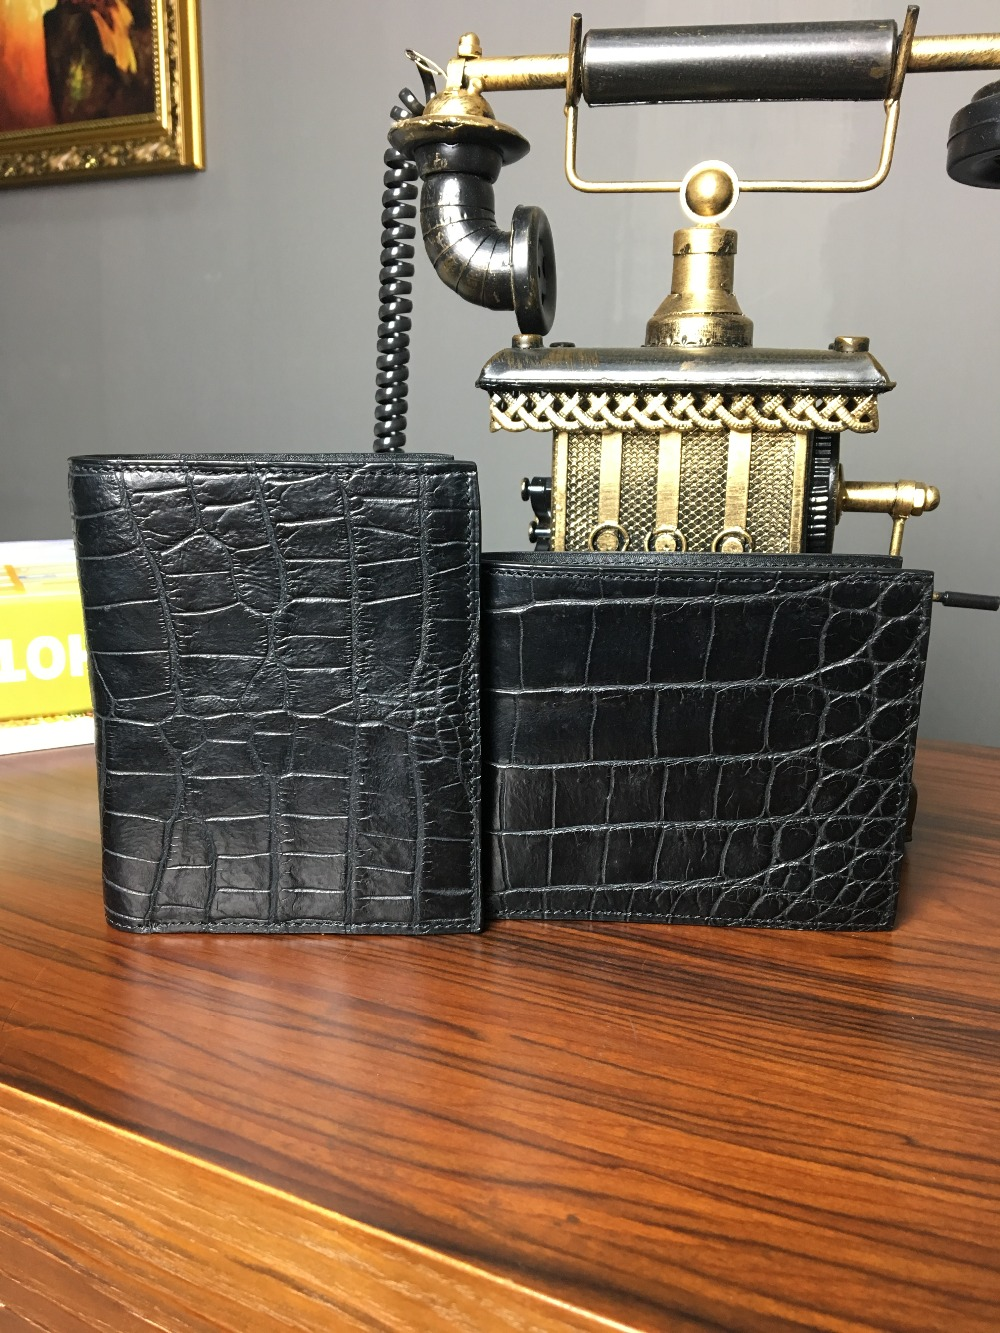 TERSE_Black Friday sale luxury crocodile short wallet womens fashion handmade leather short purse in black with pin pocket